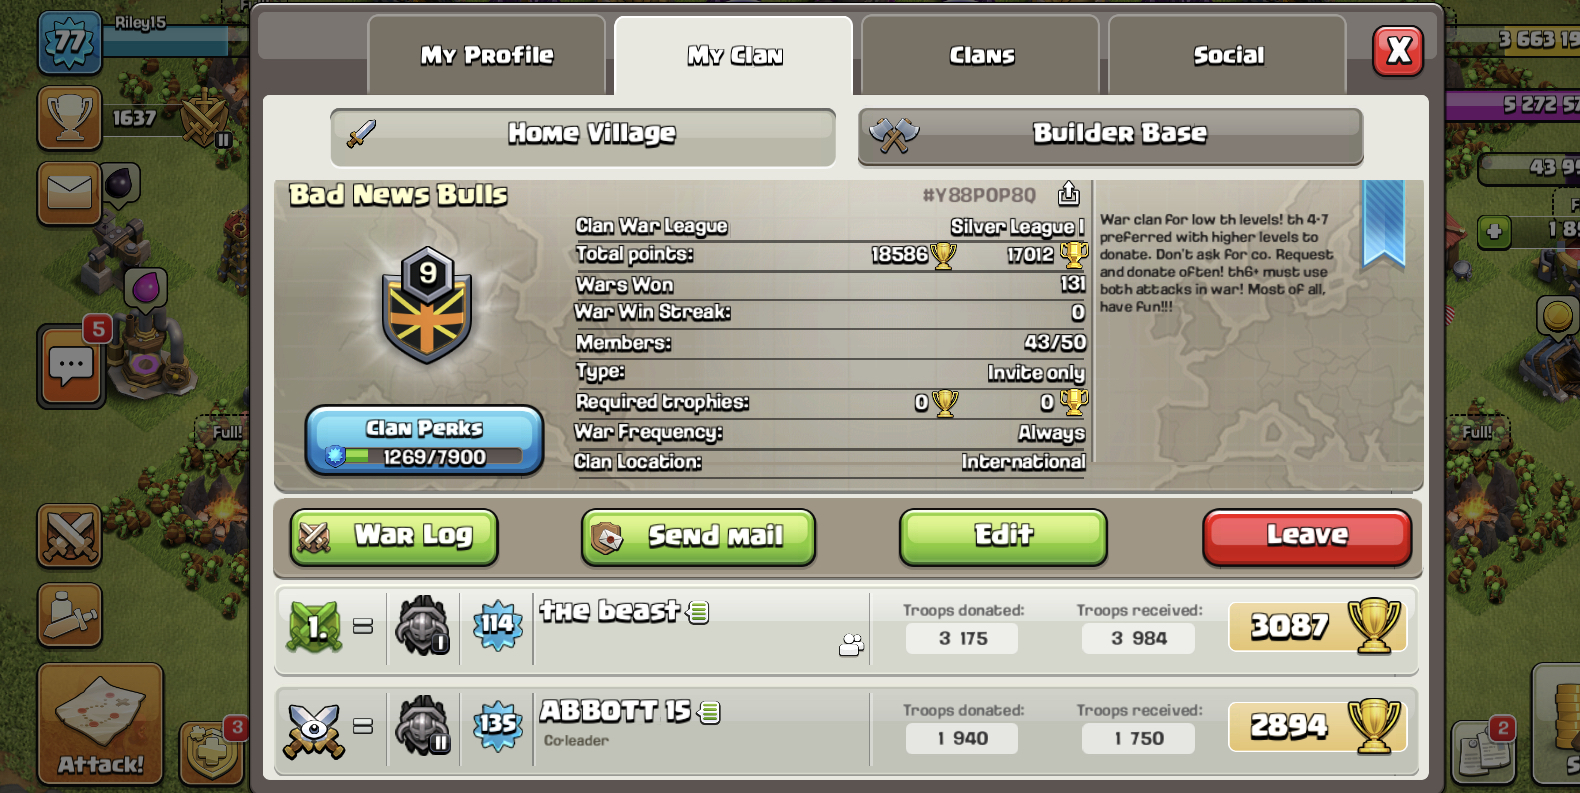 who wants to join our clan. active clan wars/games/leagues